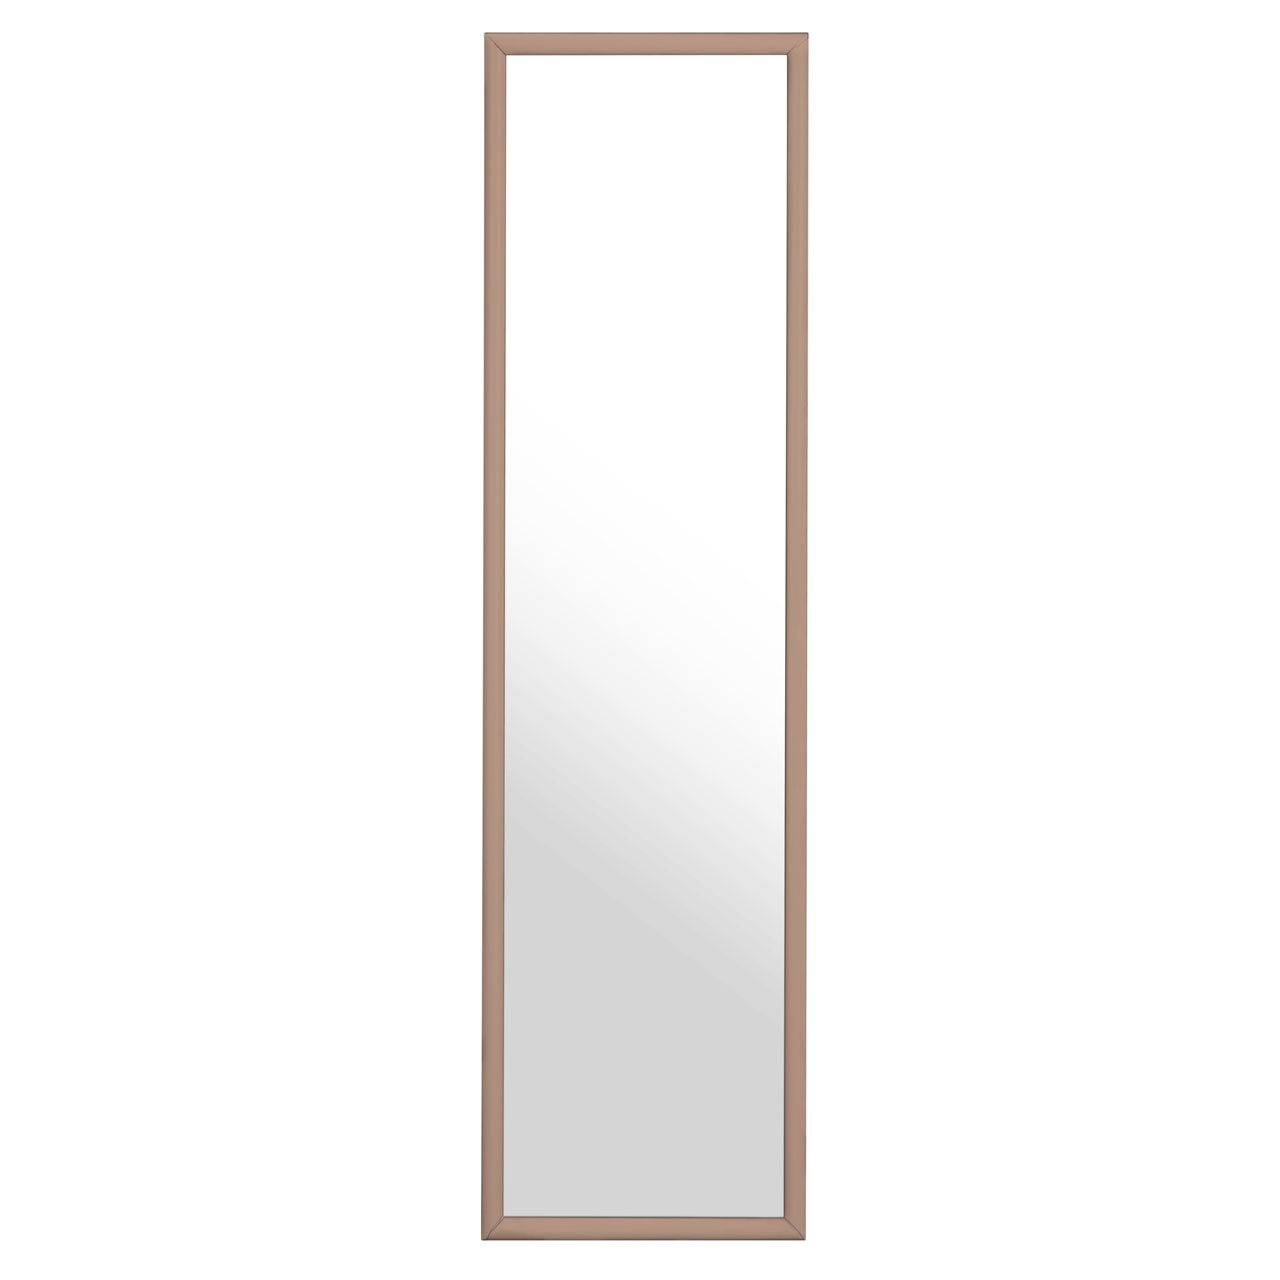 Copper Plastic Frame Over Door Mirror Understated Design